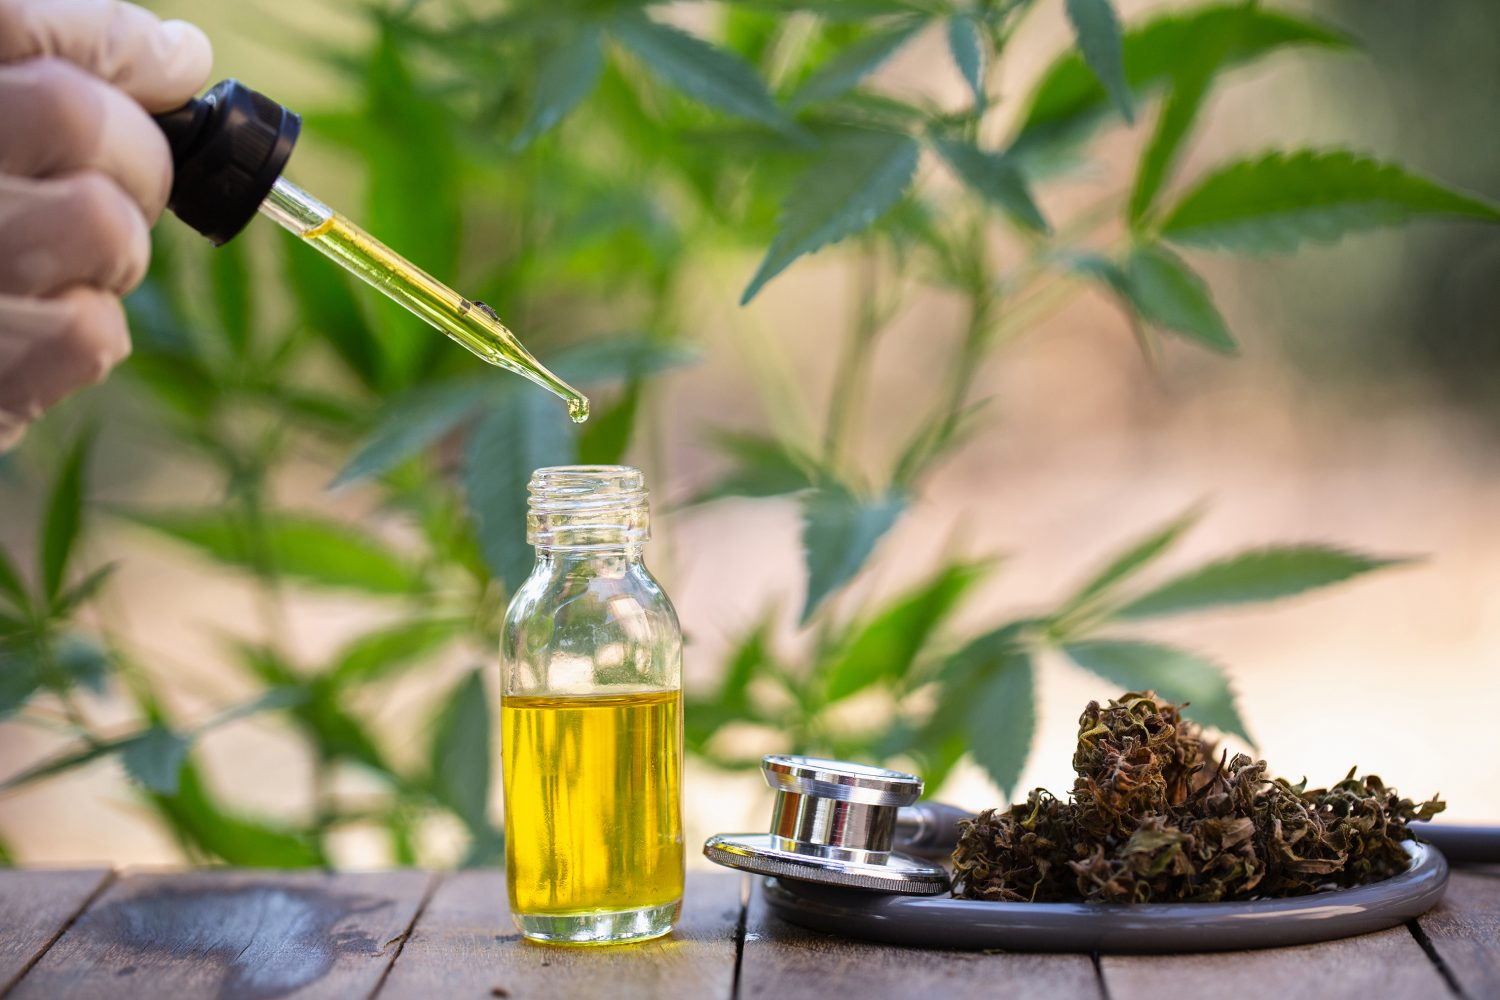 Who is CBD Safe For?